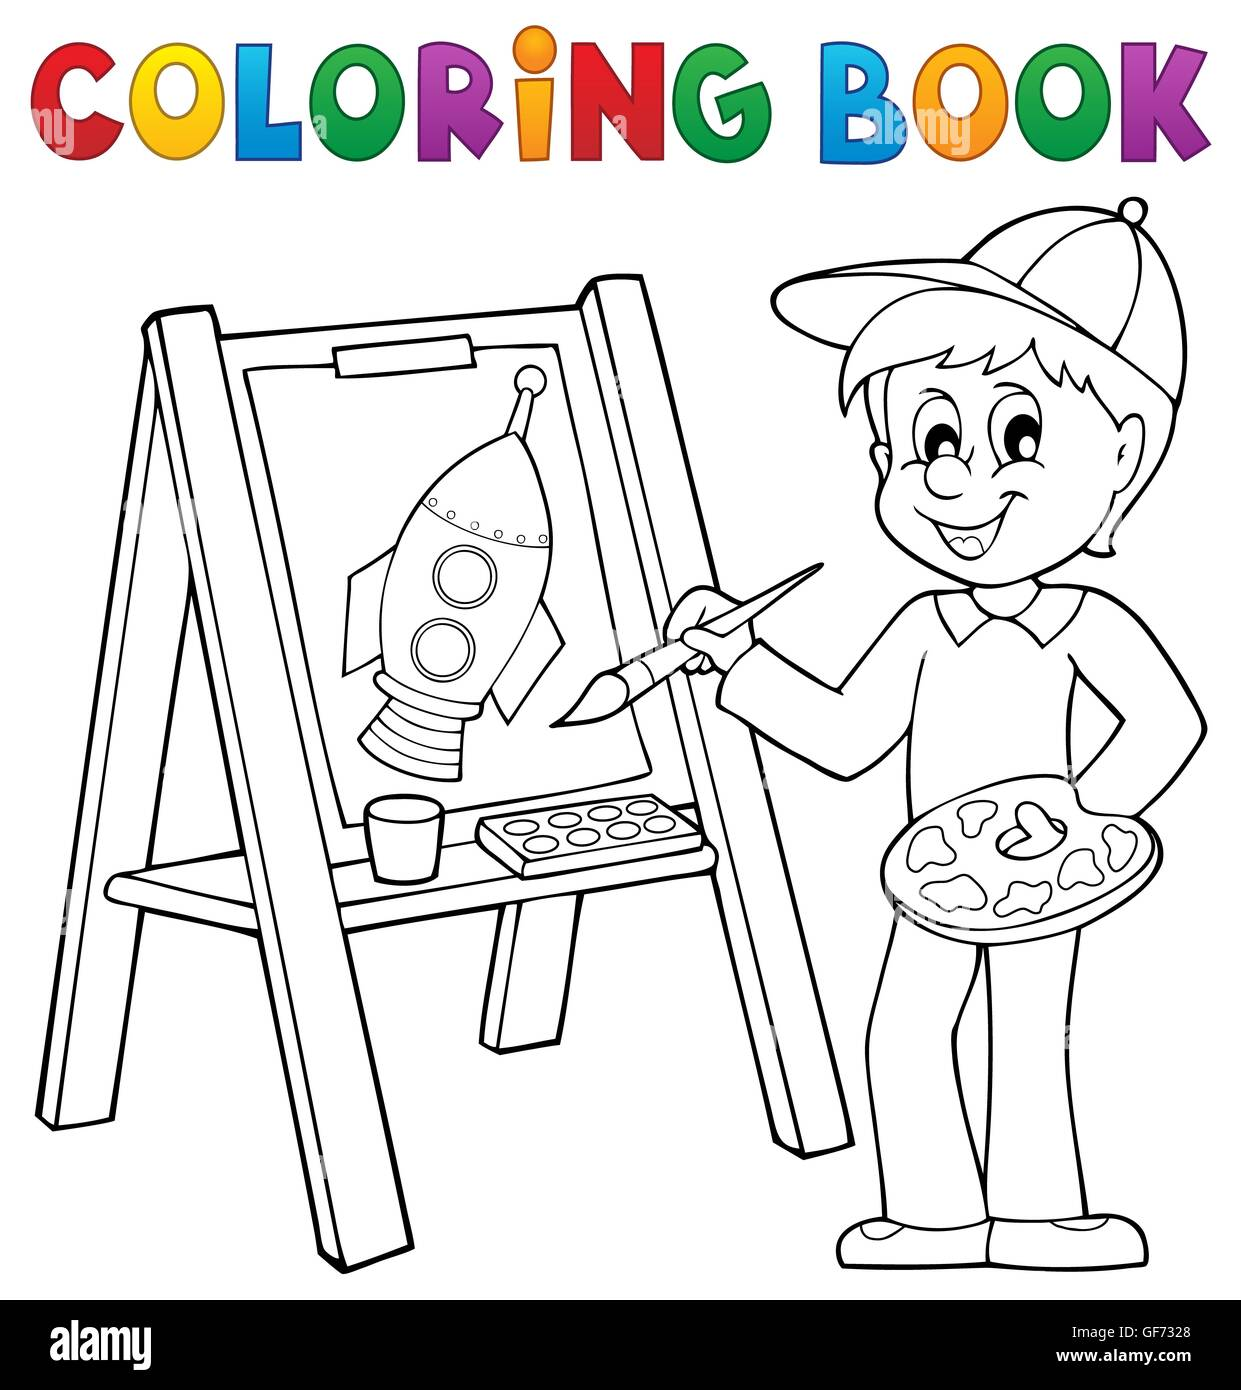 Boy Painting On Drawing Book Stockfotos & Boy Painting On Drawing ...